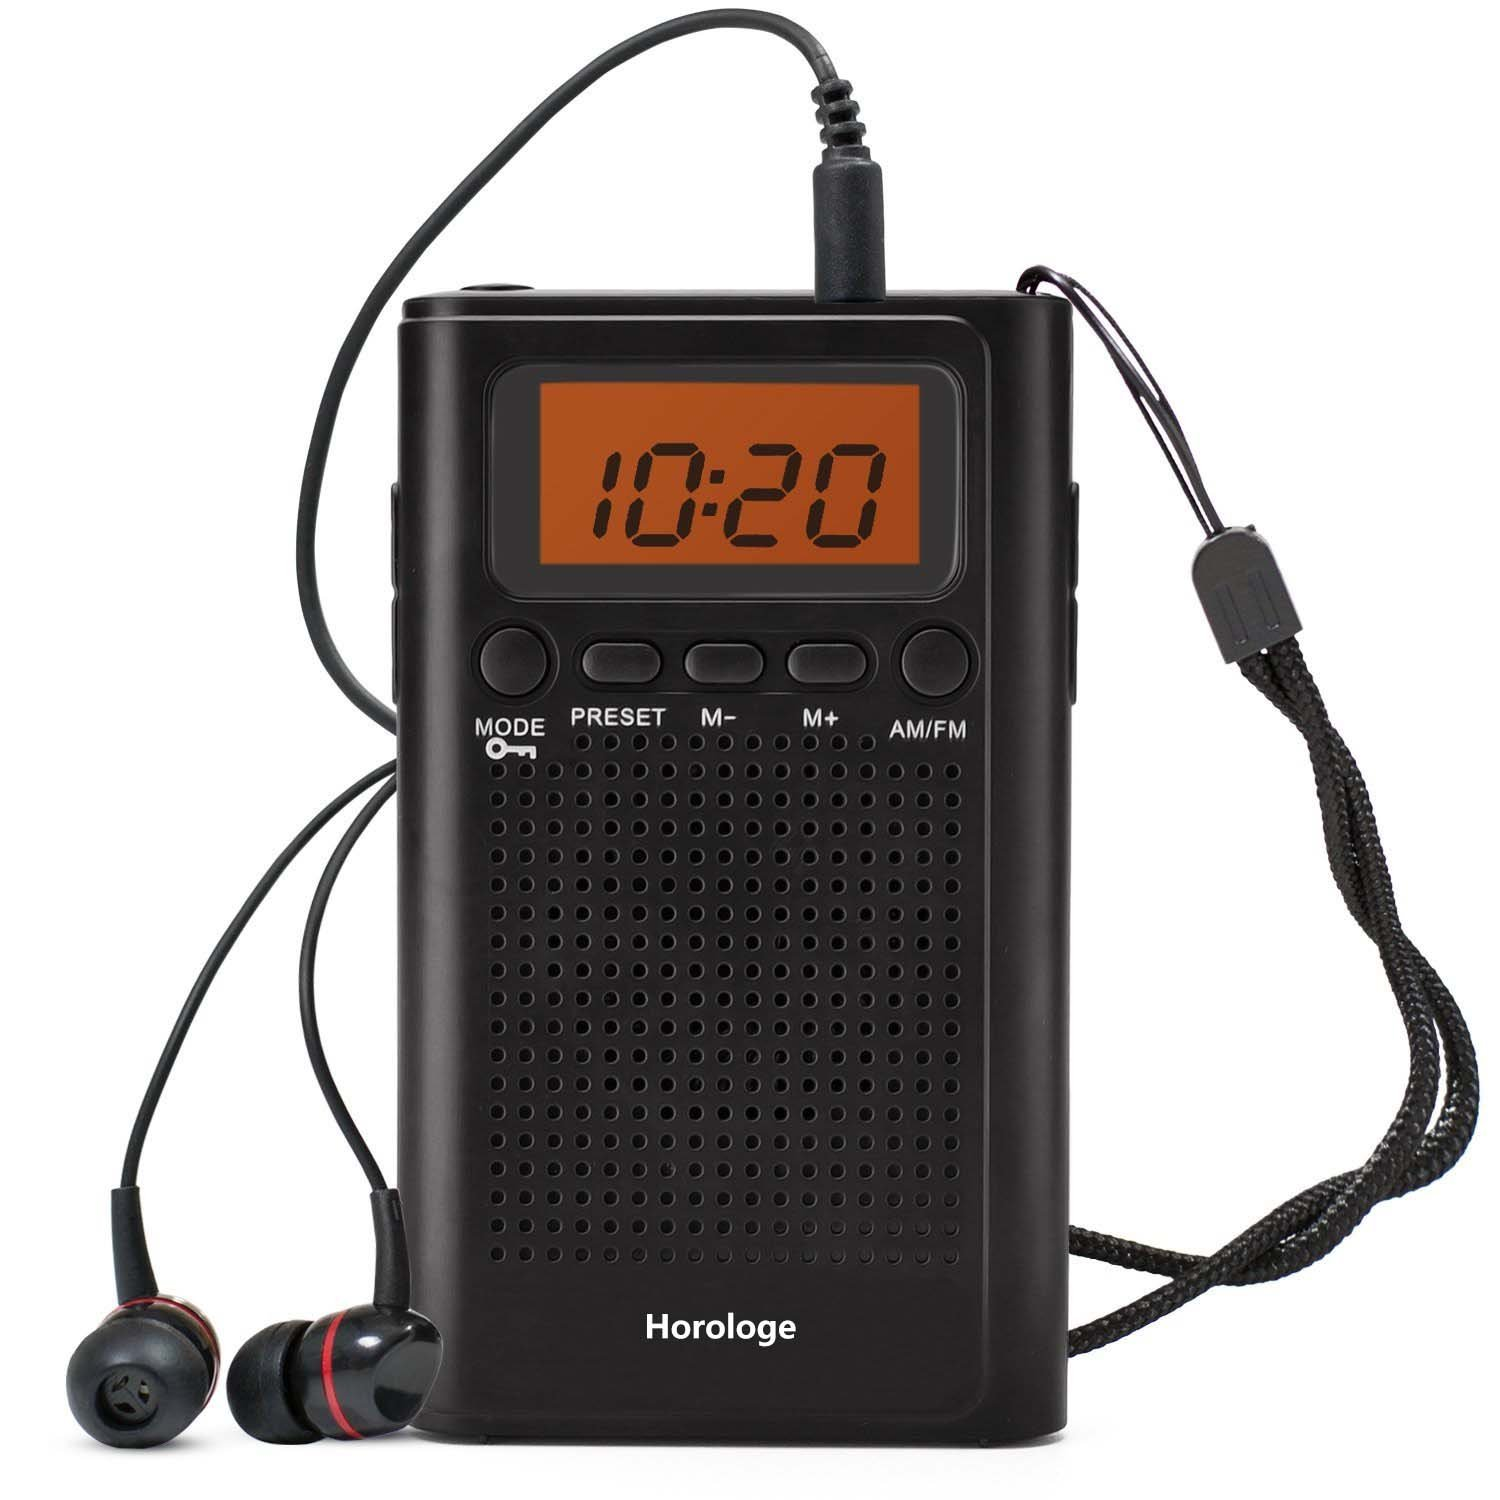 Pocket Radio, Portable AM/FM Radio, Digital Tuning Radios with Speaker, Digital Display, Alarm Clock, and Earphone FuHongYuan FHY-198